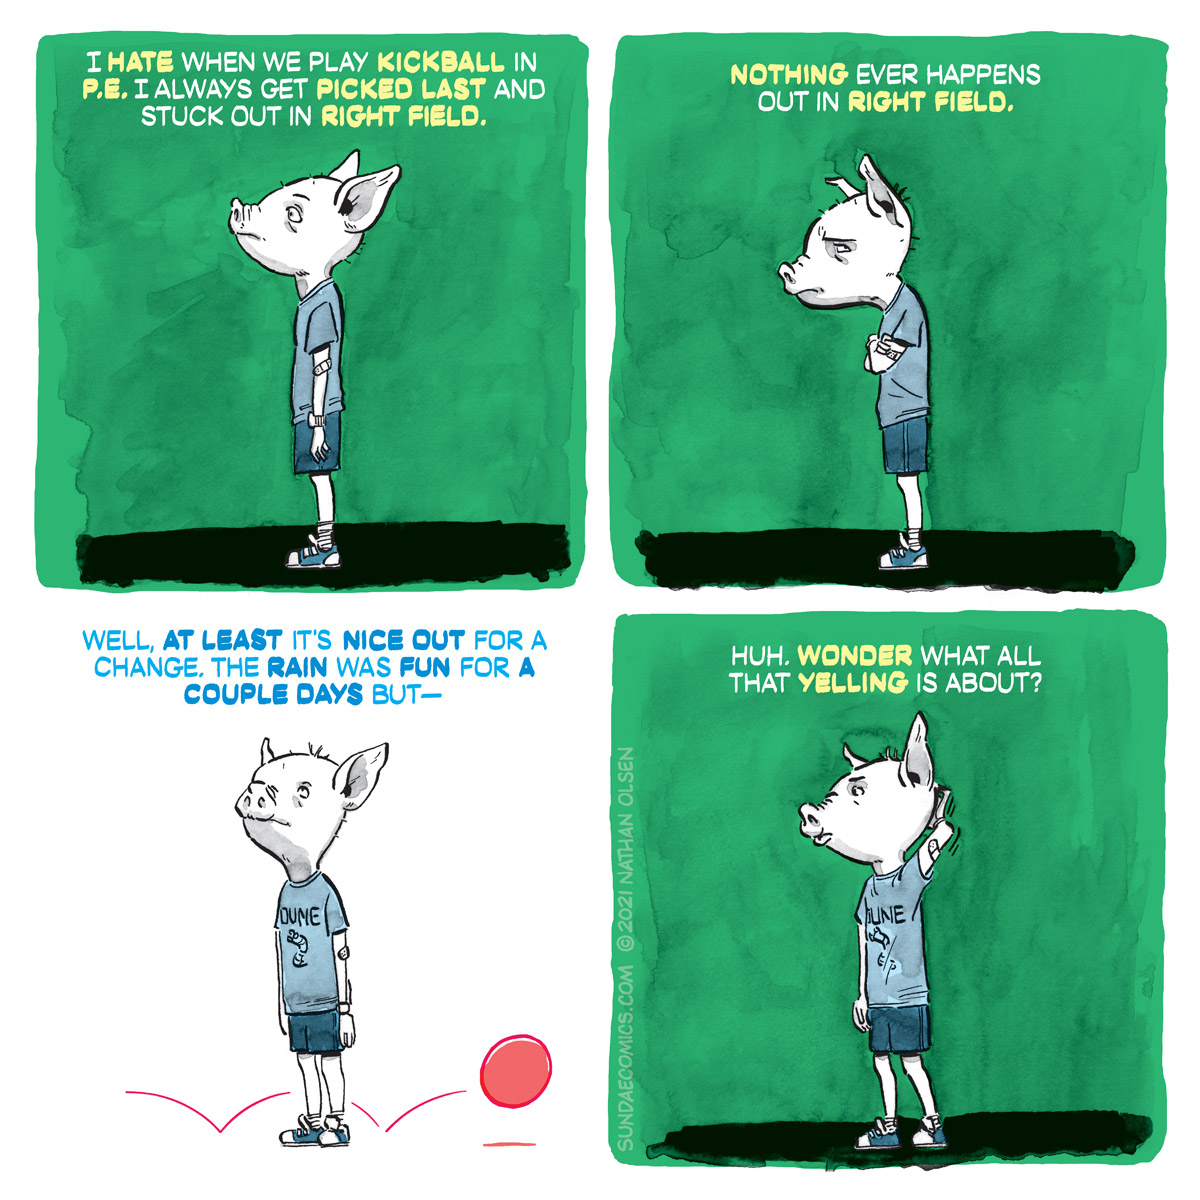 A humorous webcomic about a kid who starts daydreaming in the middle of a kickball game.